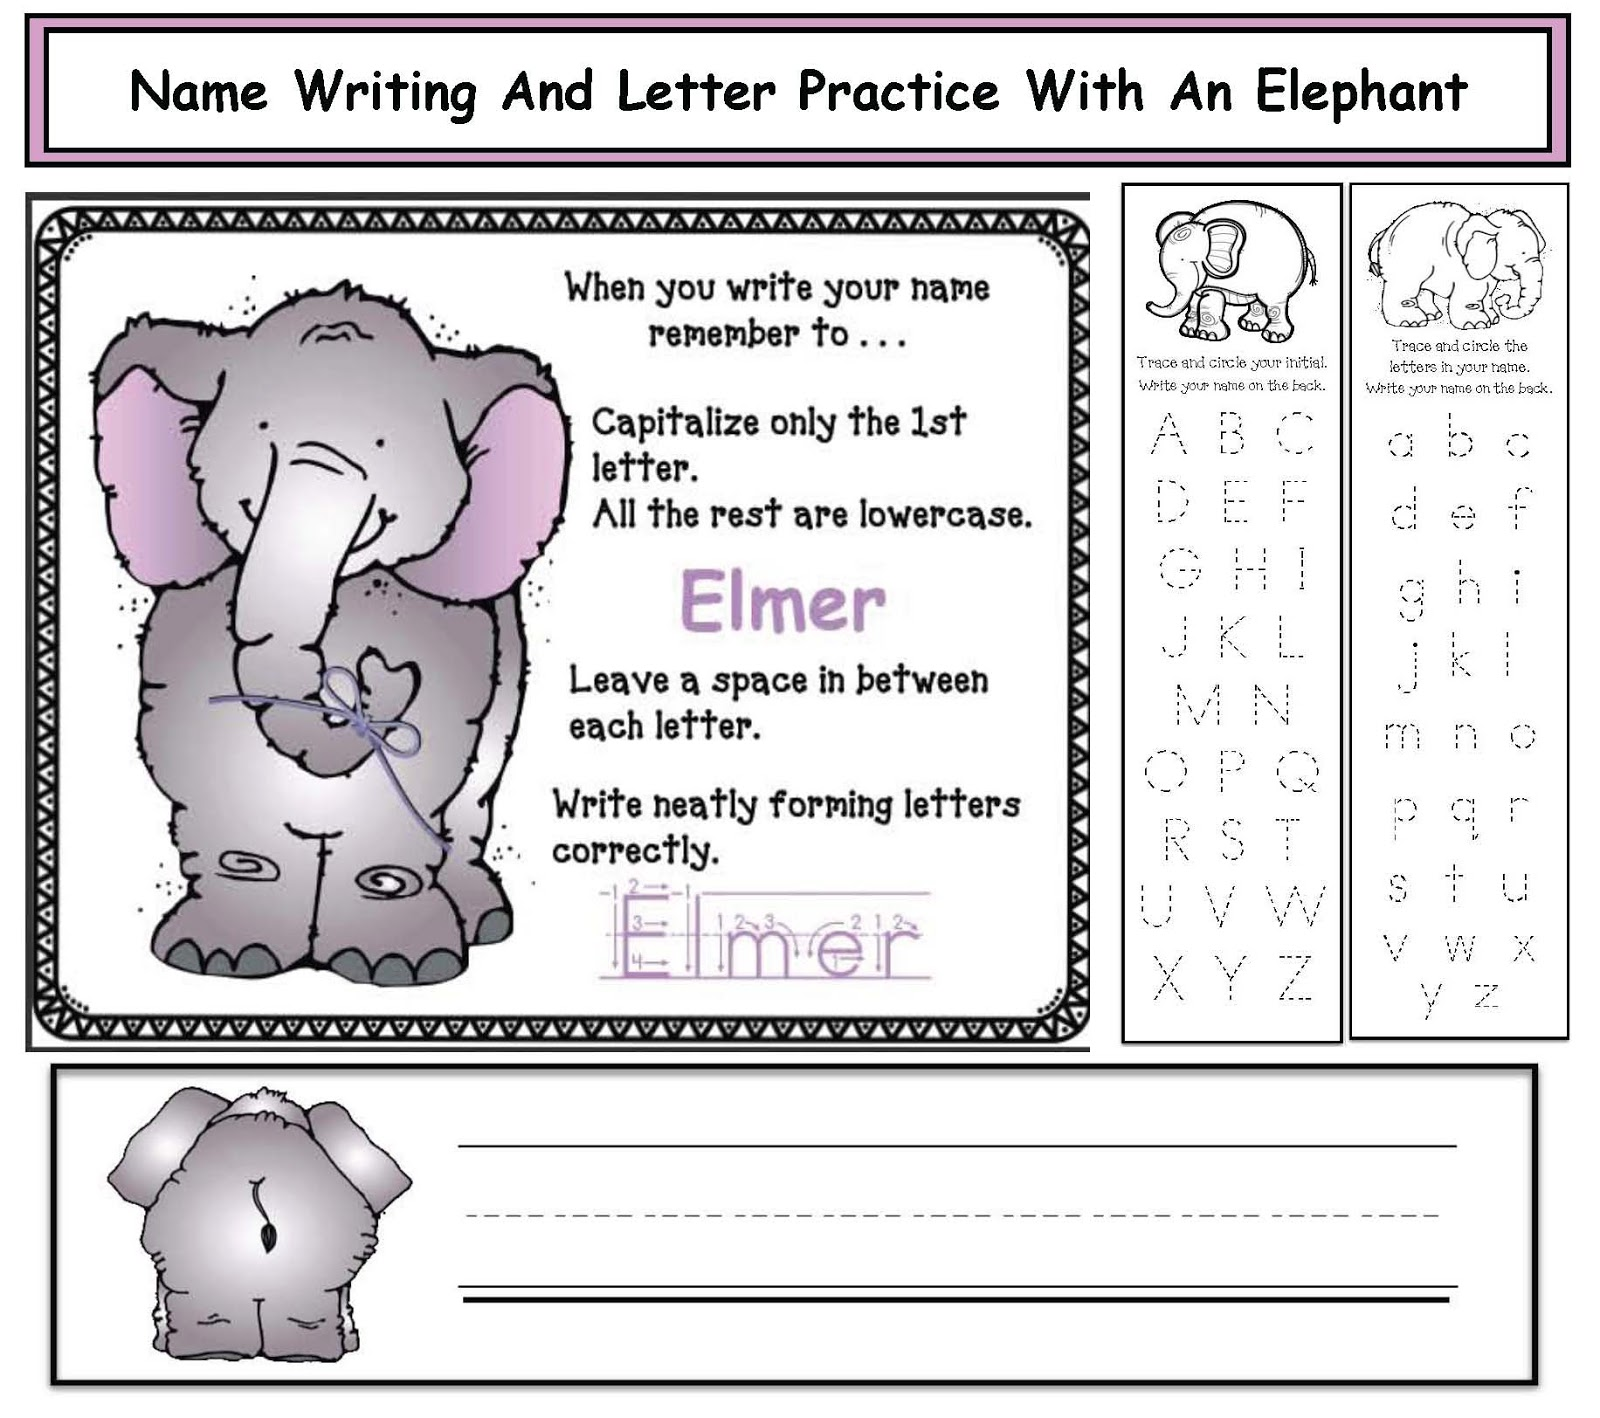 Name Writing Amp Letter Practice